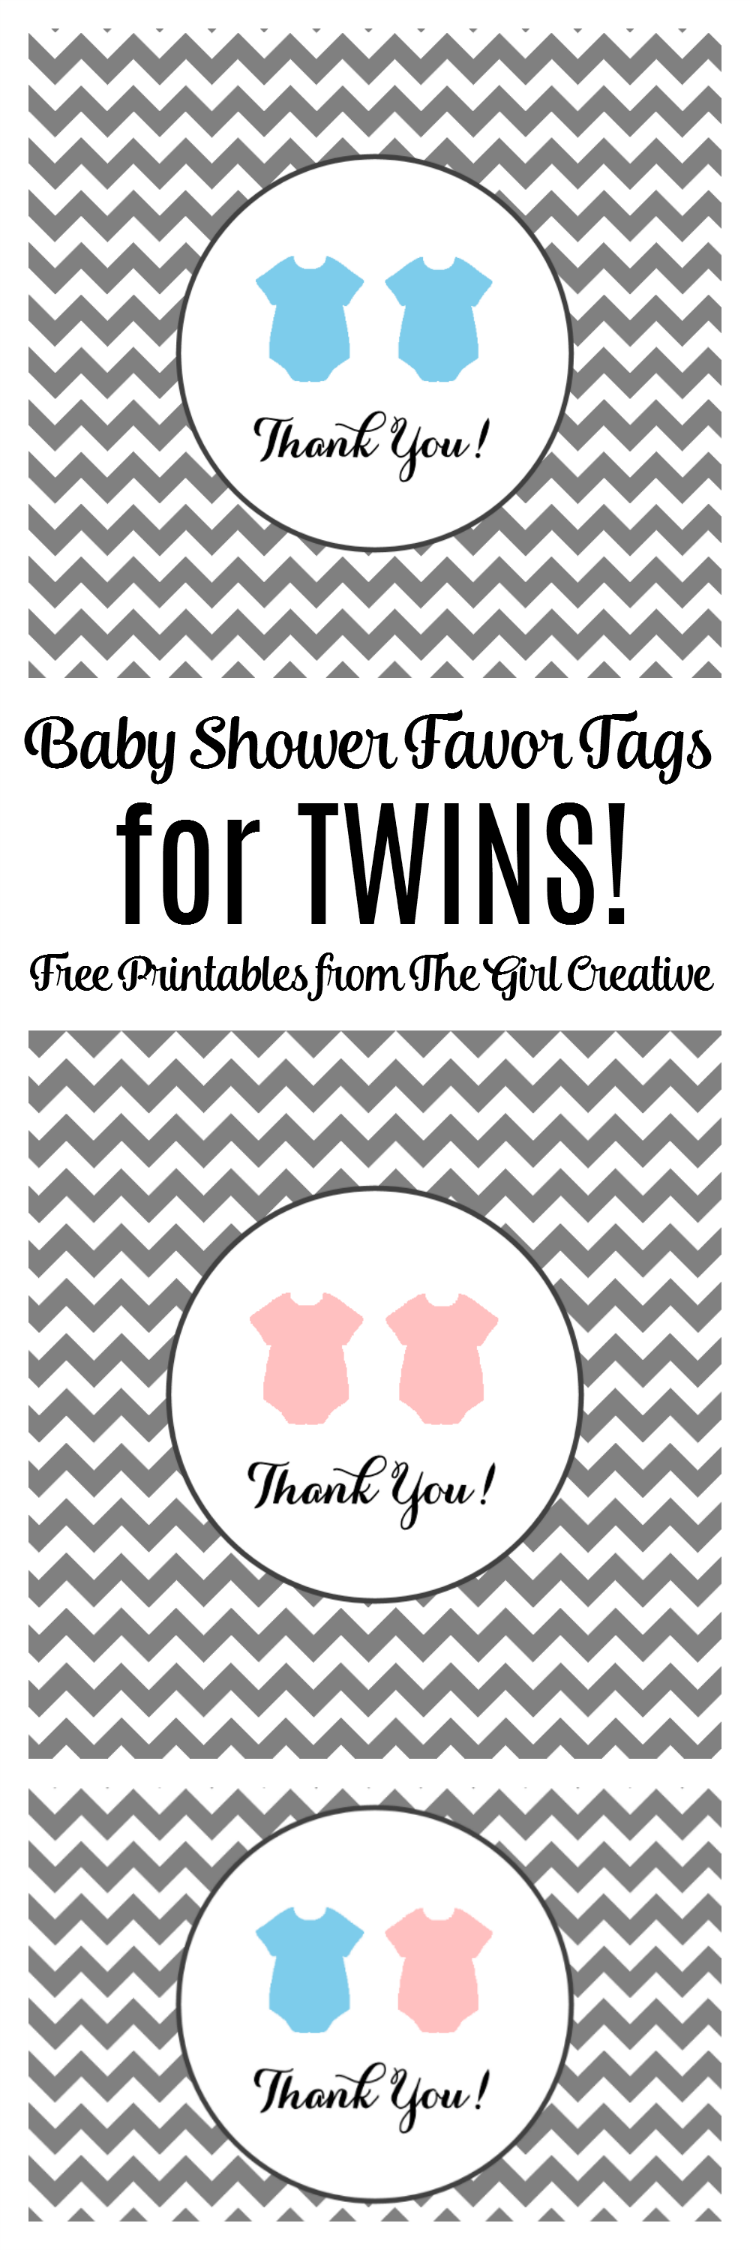 Baby shower favor tags for twins the girl creative - Baby shower favor tags ...